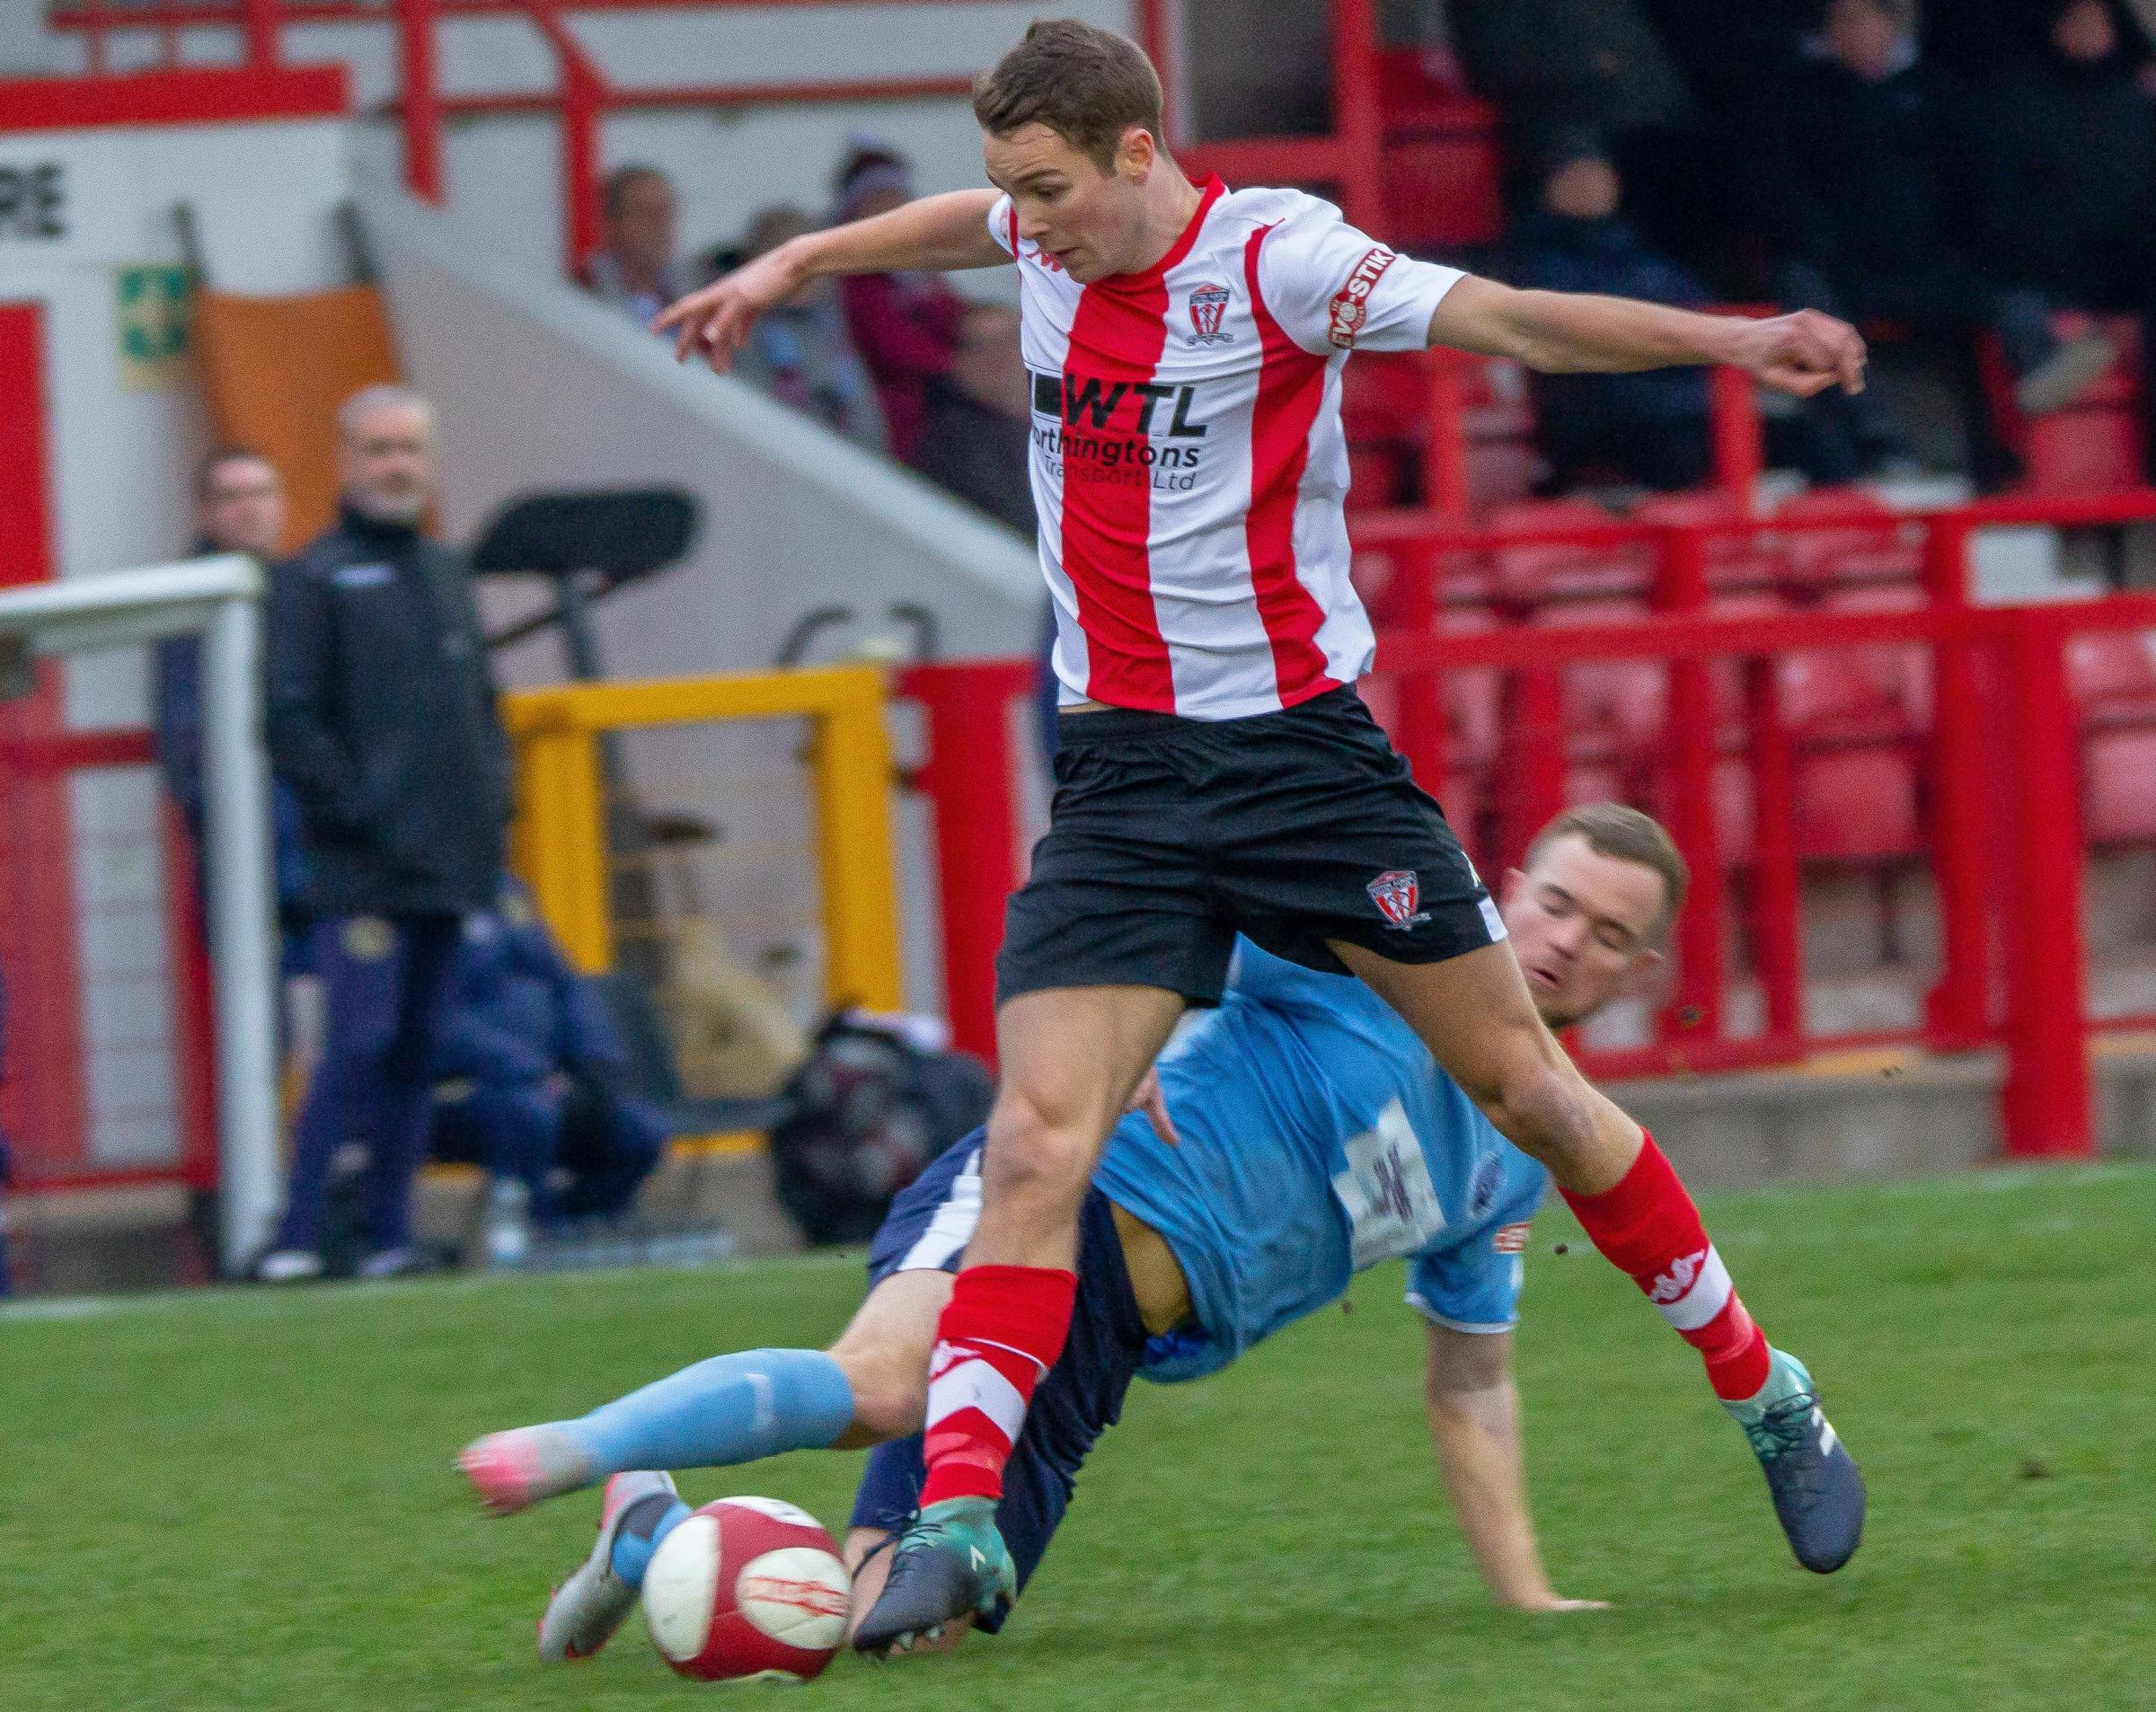 Billy Smart is challenged by an opponent during Witton Albion's 1-0 defeat against South Shields in the Northern Premier League's top-flight at Wincham Park on Saturday. Picture: Karl Brooks Photography